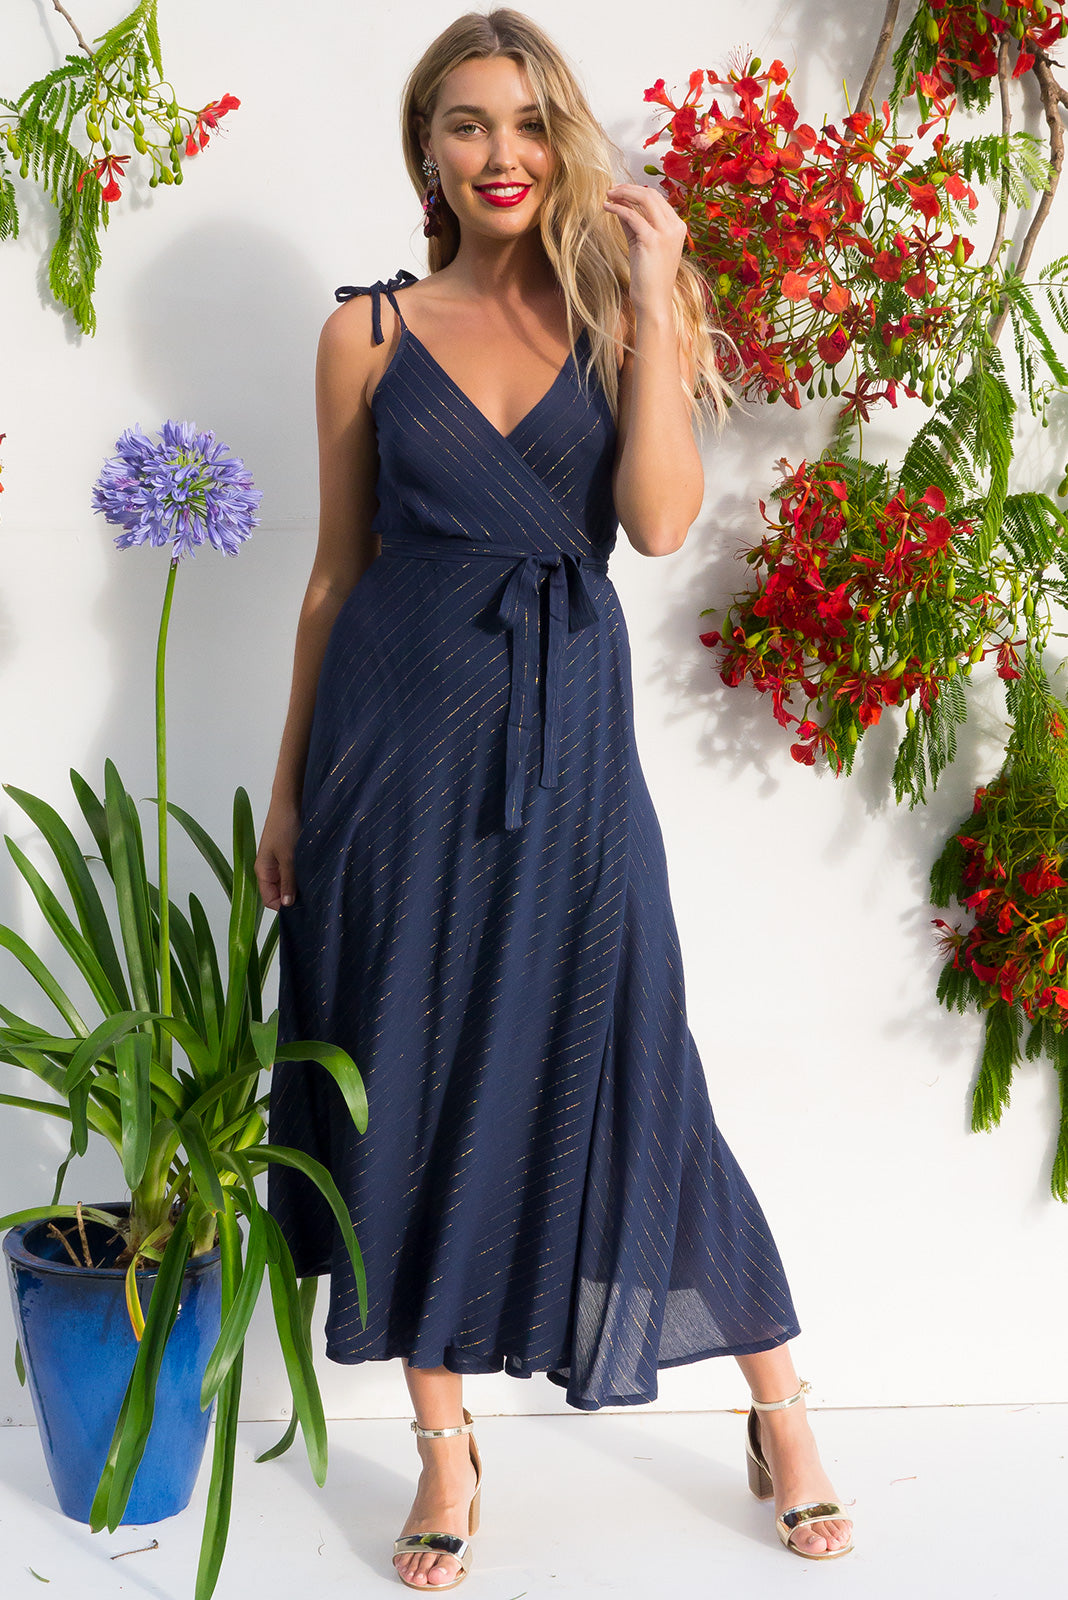 Byron Golden Thread Ink Maxi with adjustable straps in dark navy with a gold lurex thread